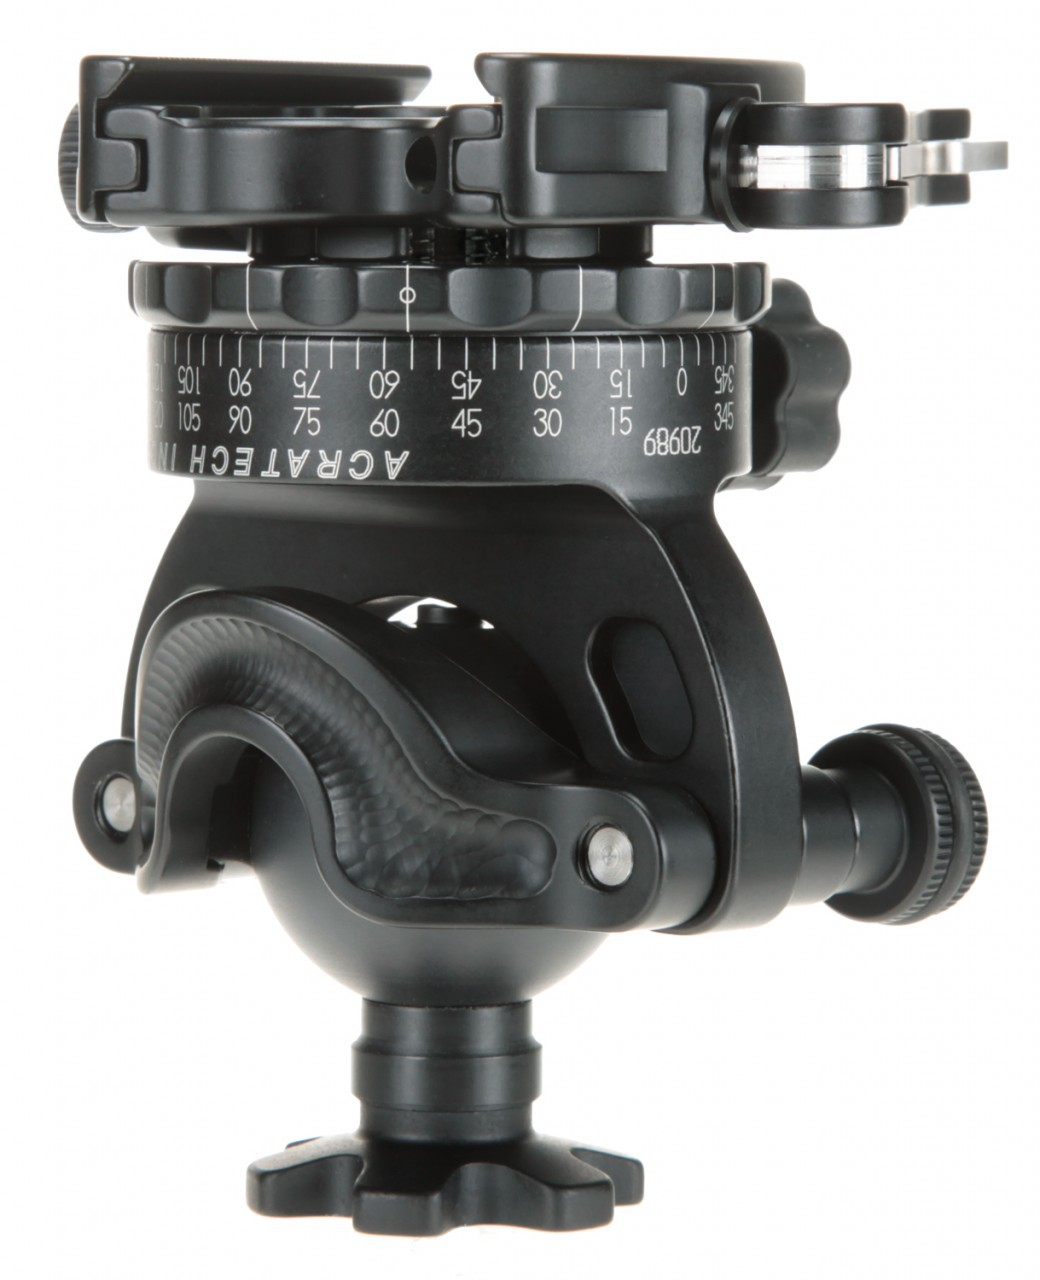 Acratech GP Ballhead With Panoramic Leveling